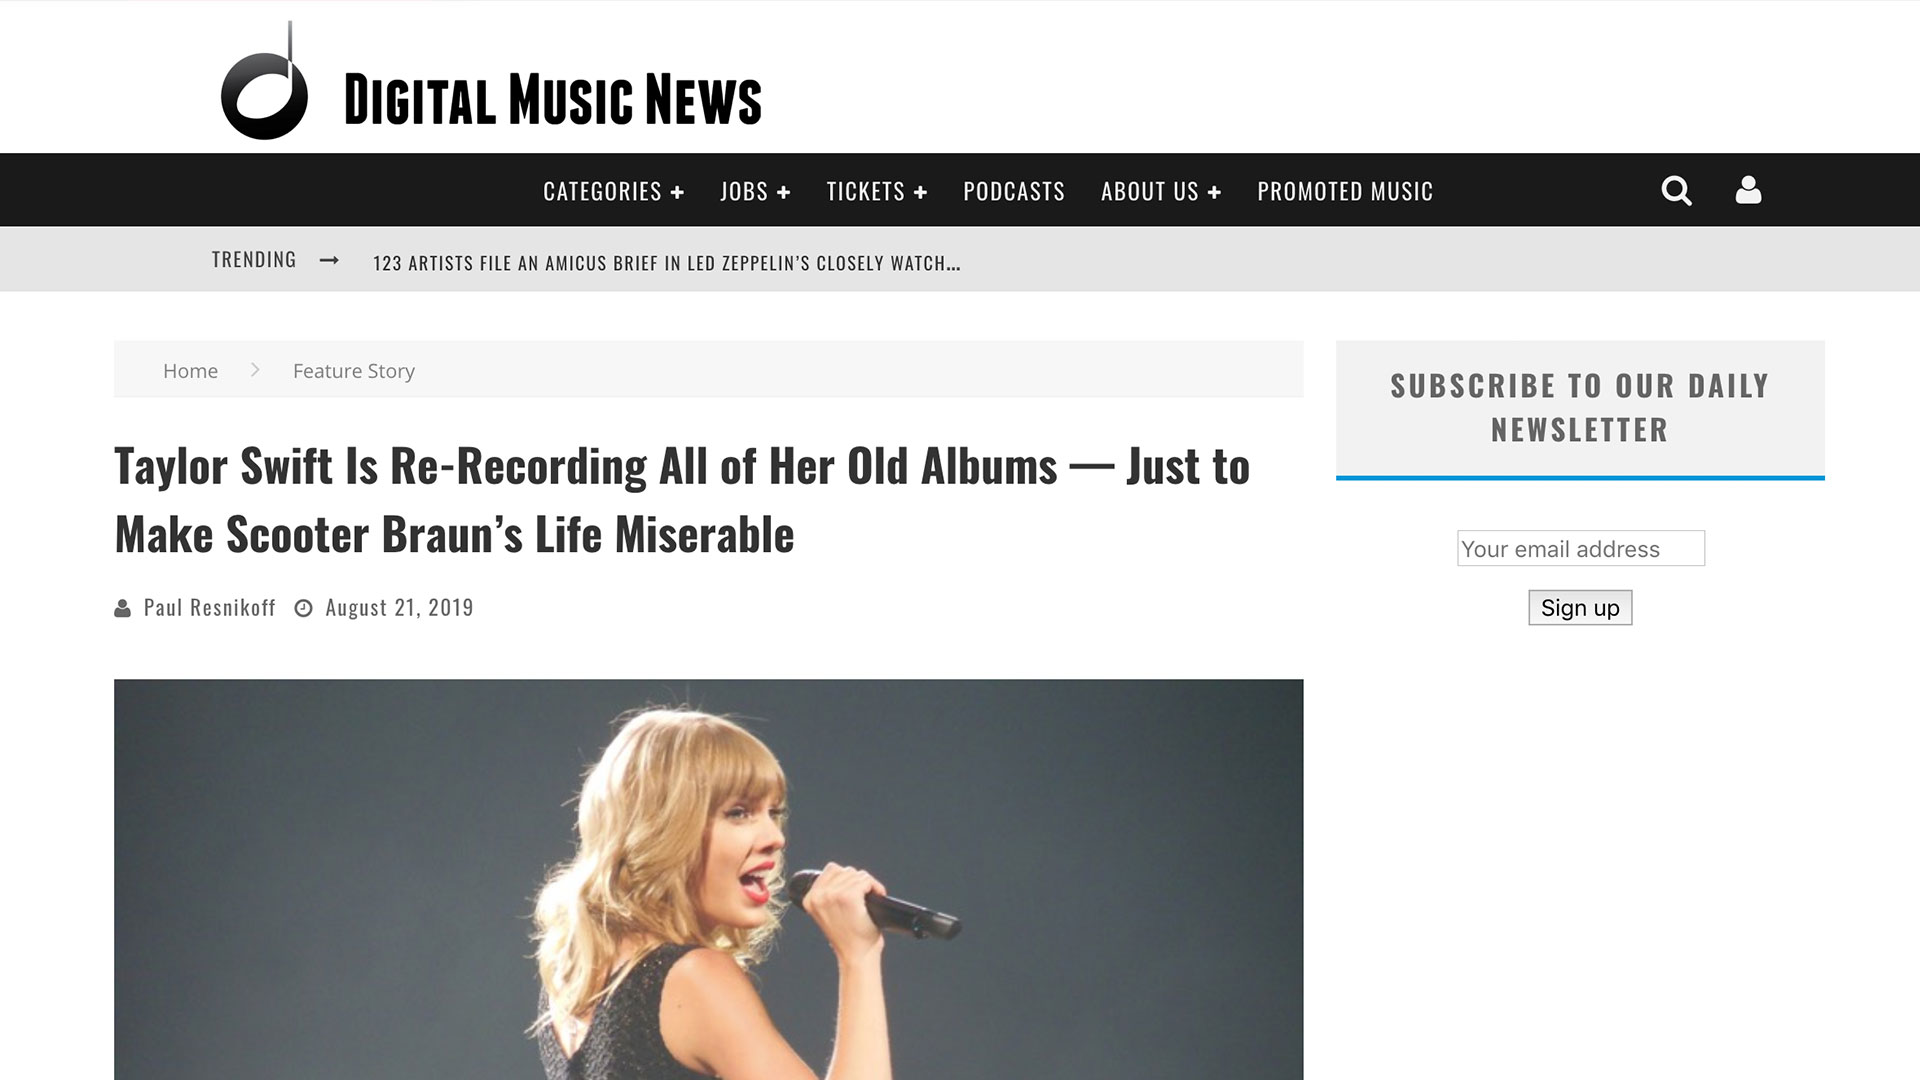 Fairness Rocks News Taylor Swift Is Re-Recording All of Her Old Albums — Just to Make Scooter Braun's Life Miserable